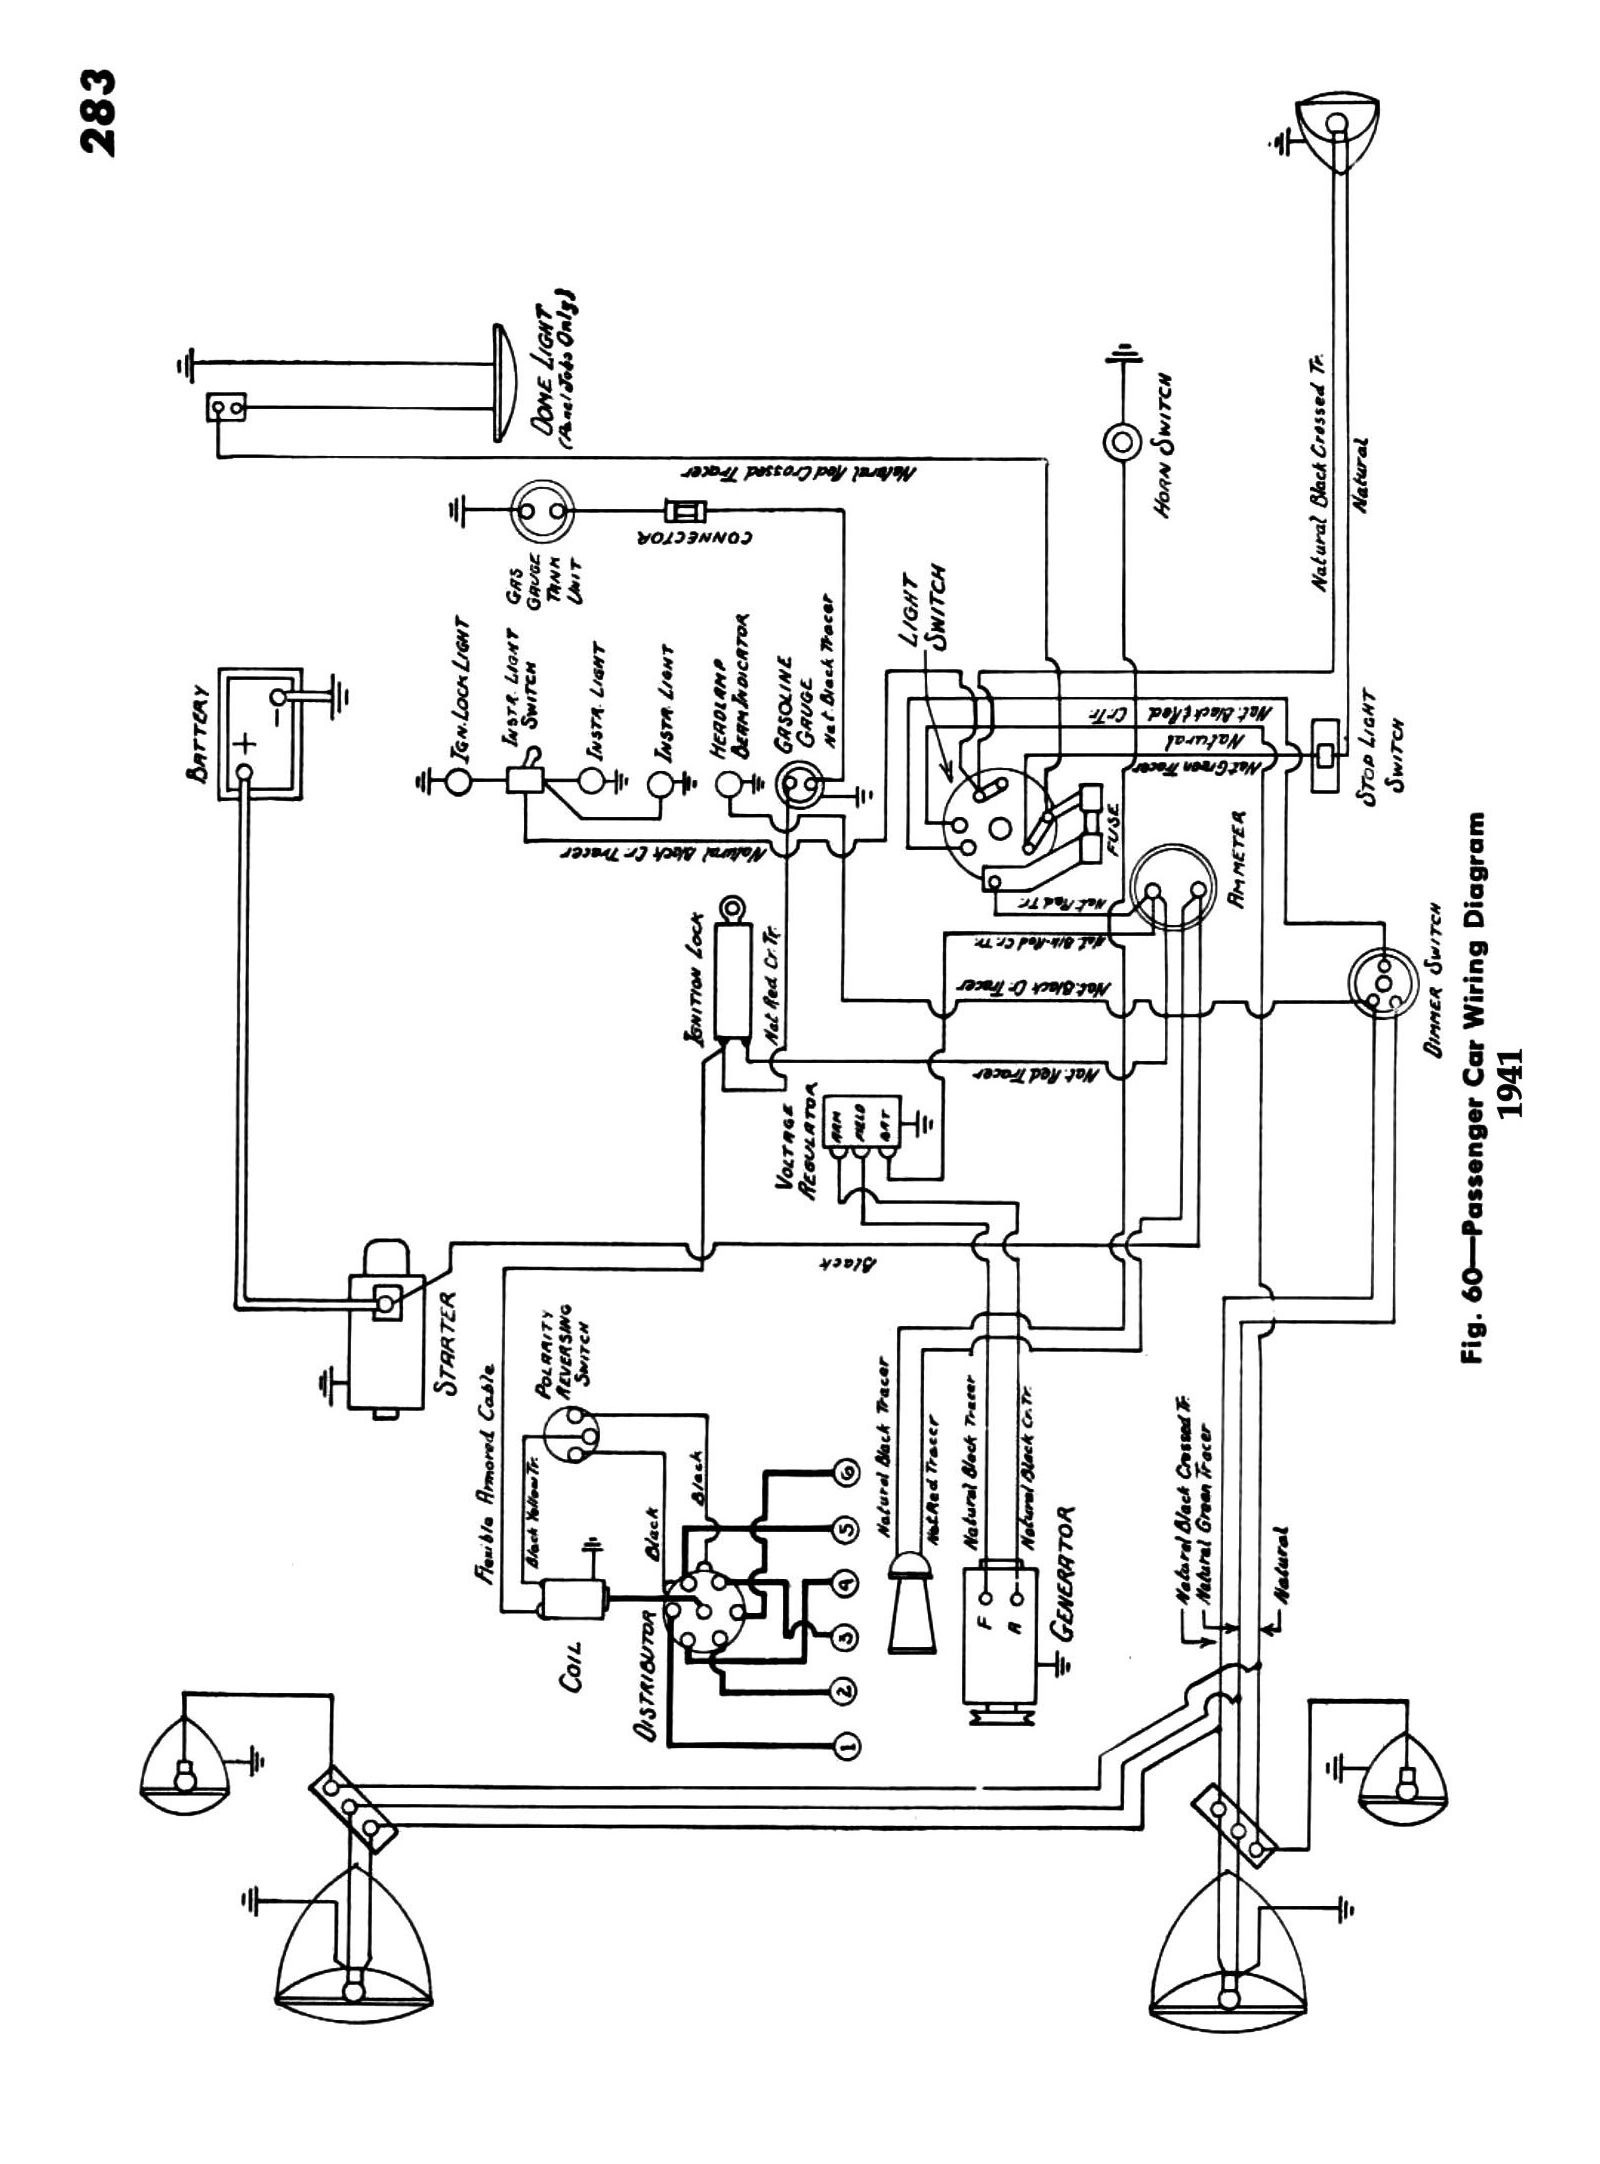 Chevy C10 Fuse Box Diagram